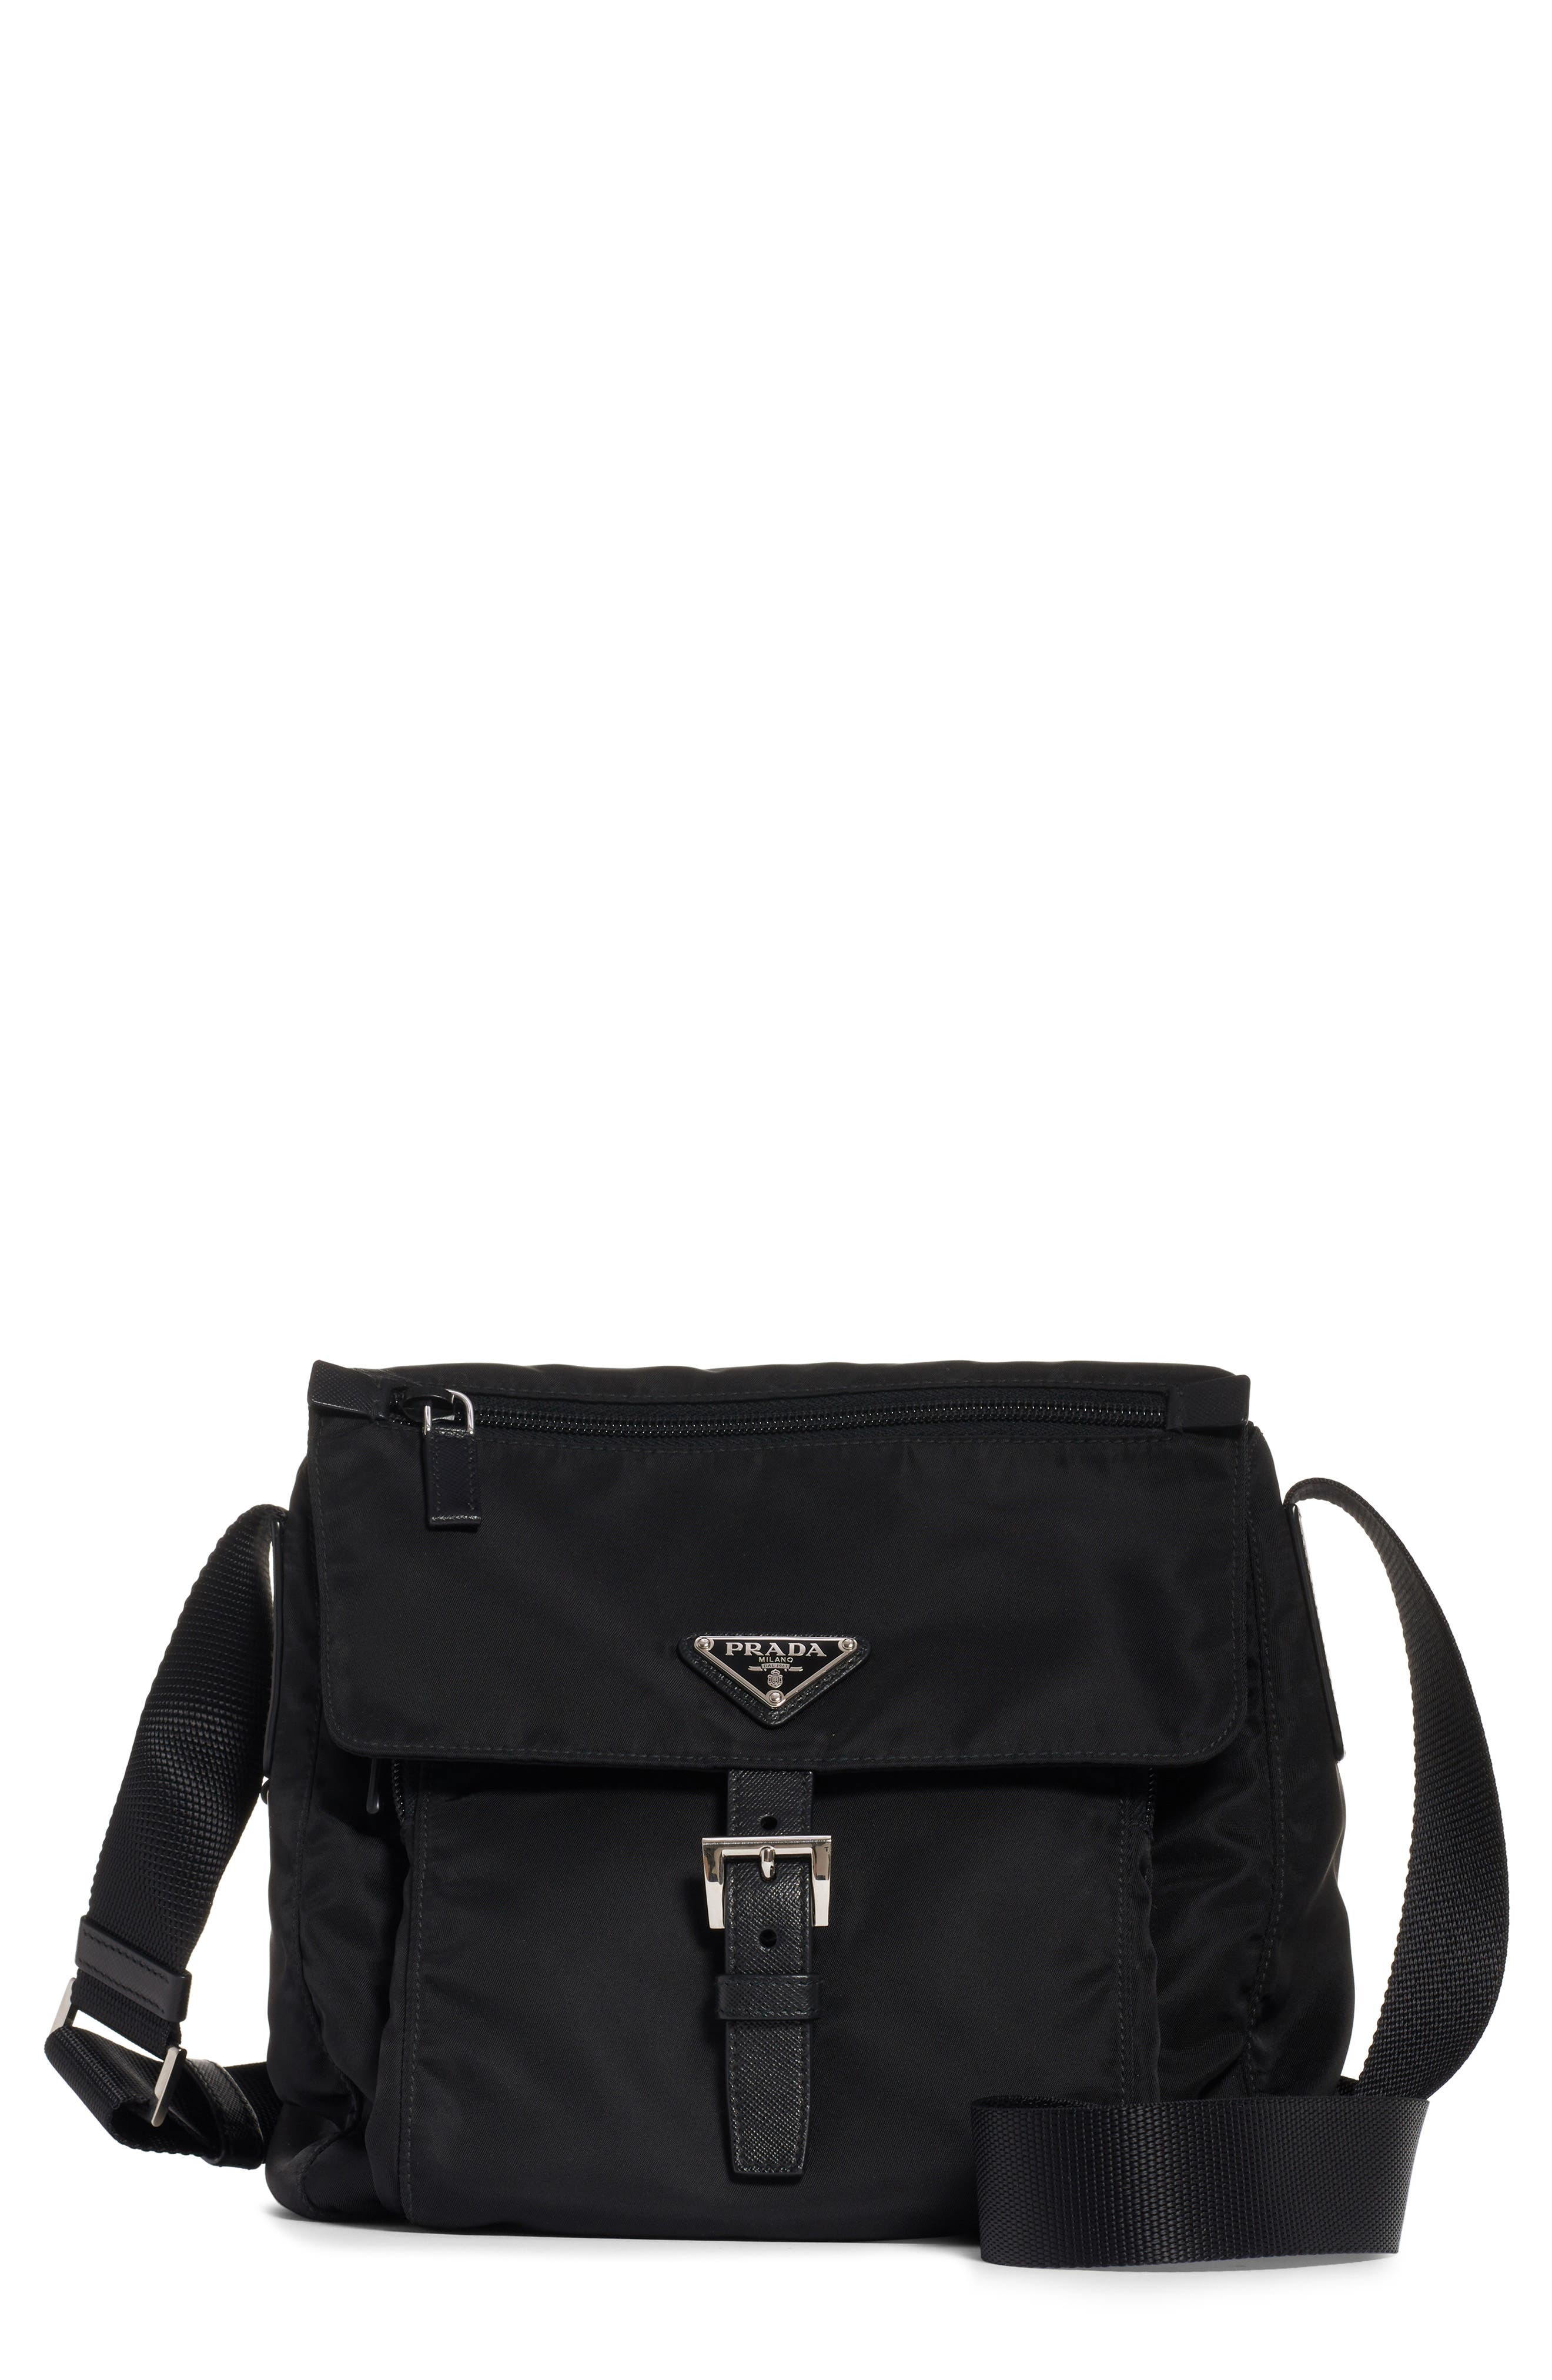 4f613ce693 Crossbody Bags Prada  Shoes